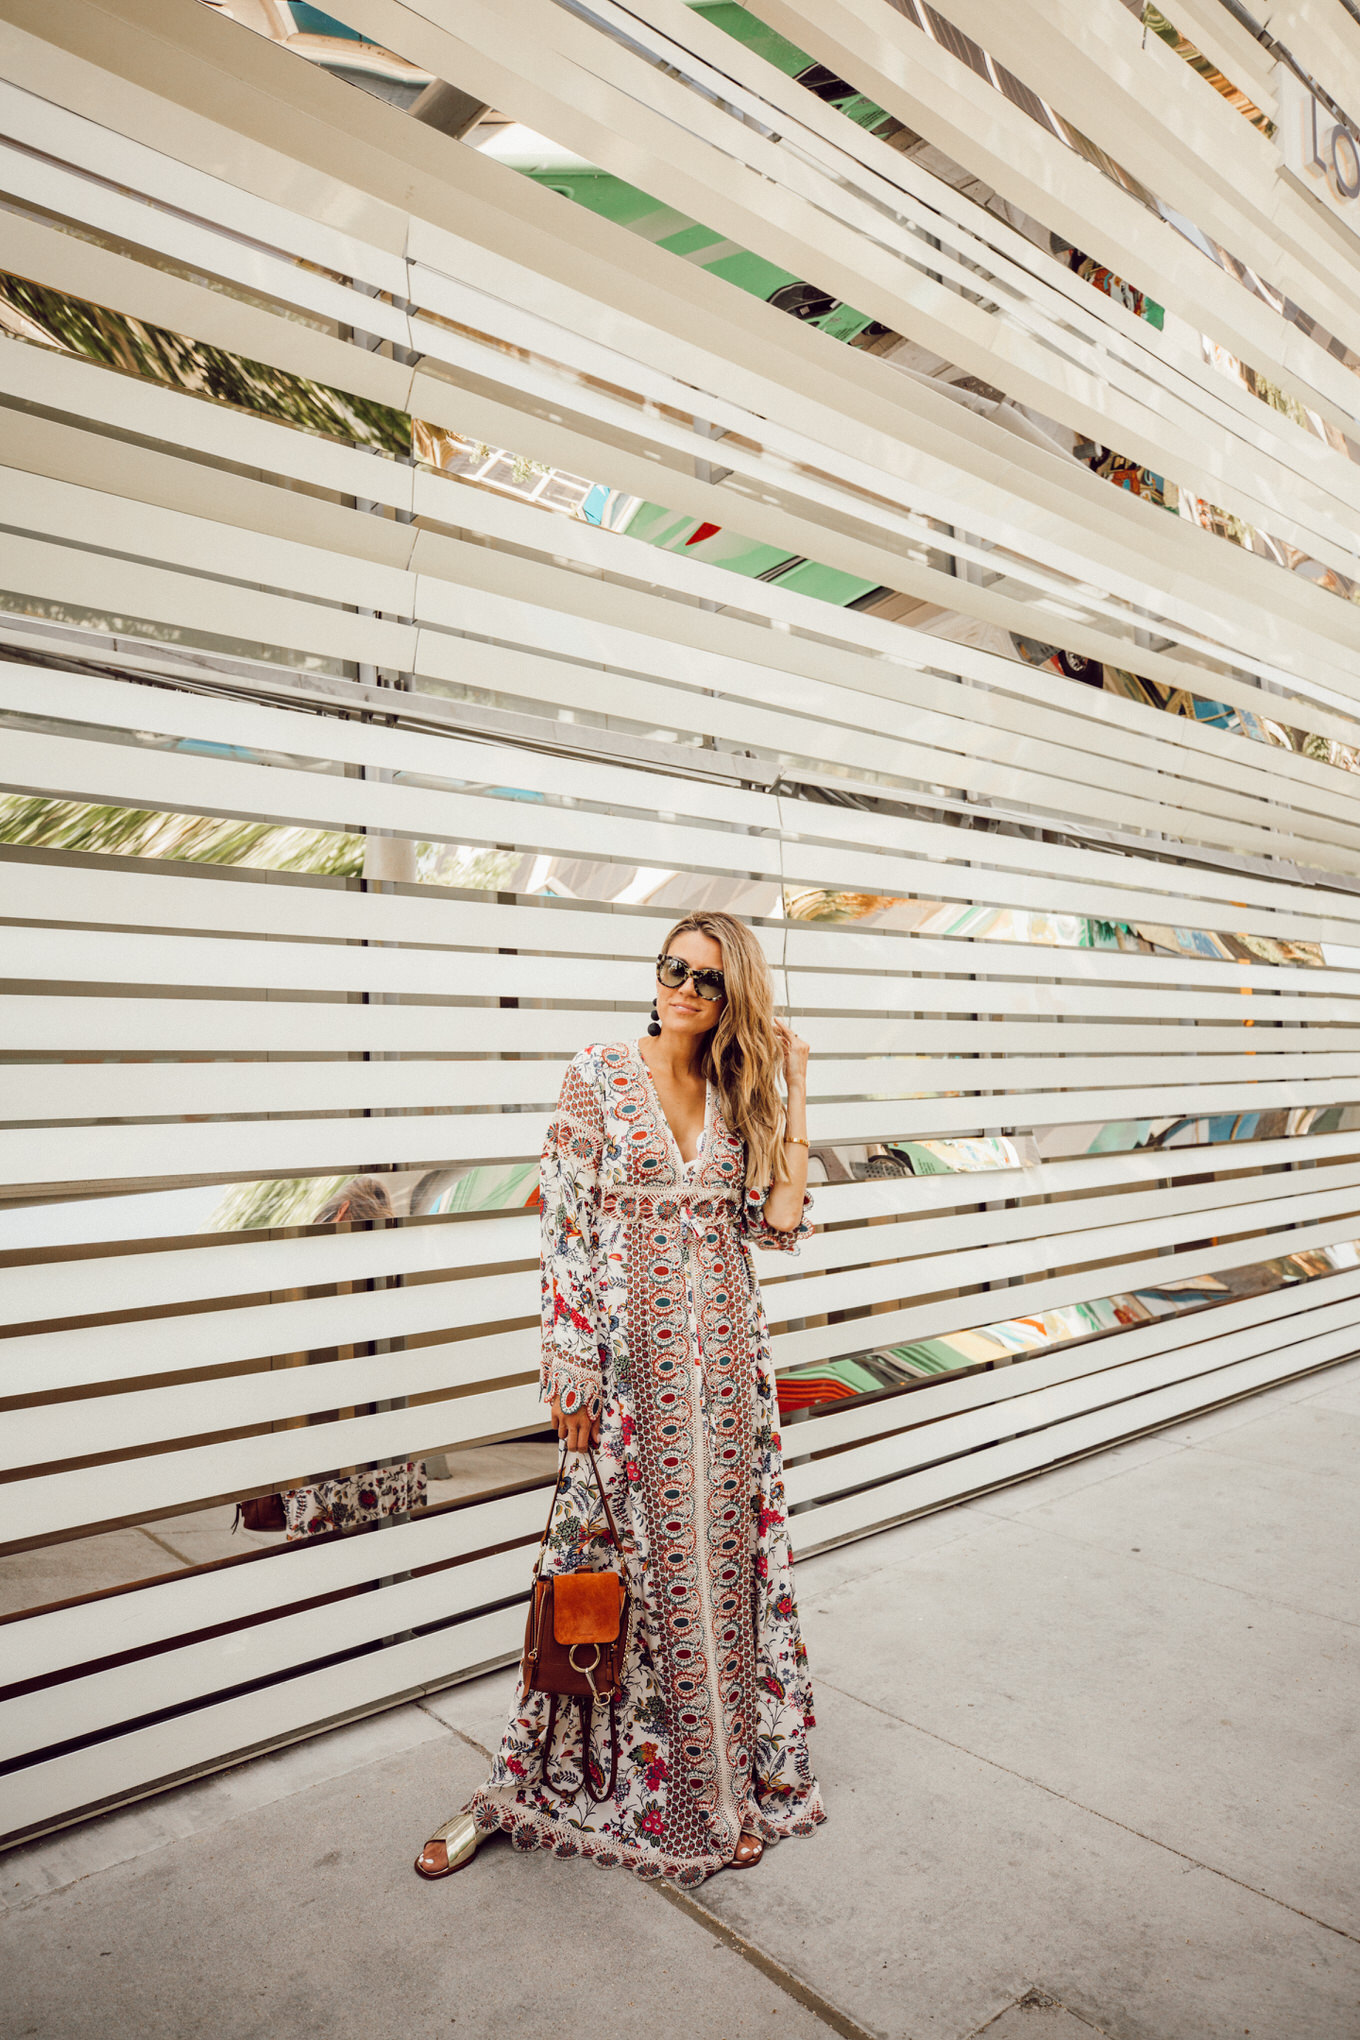 tory burch maxi dress christine andrew hello fashion blog